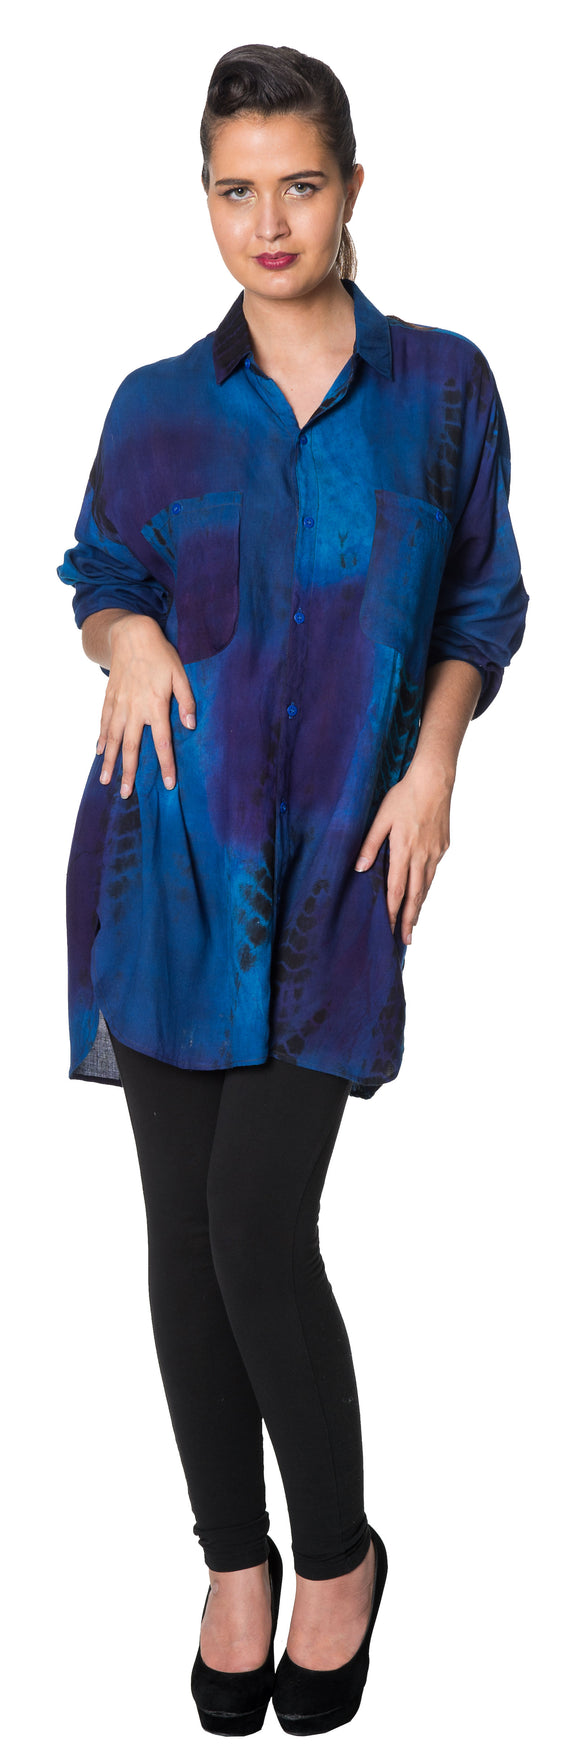 Dead Threads - Women's Blue Full Sleeve Shirt